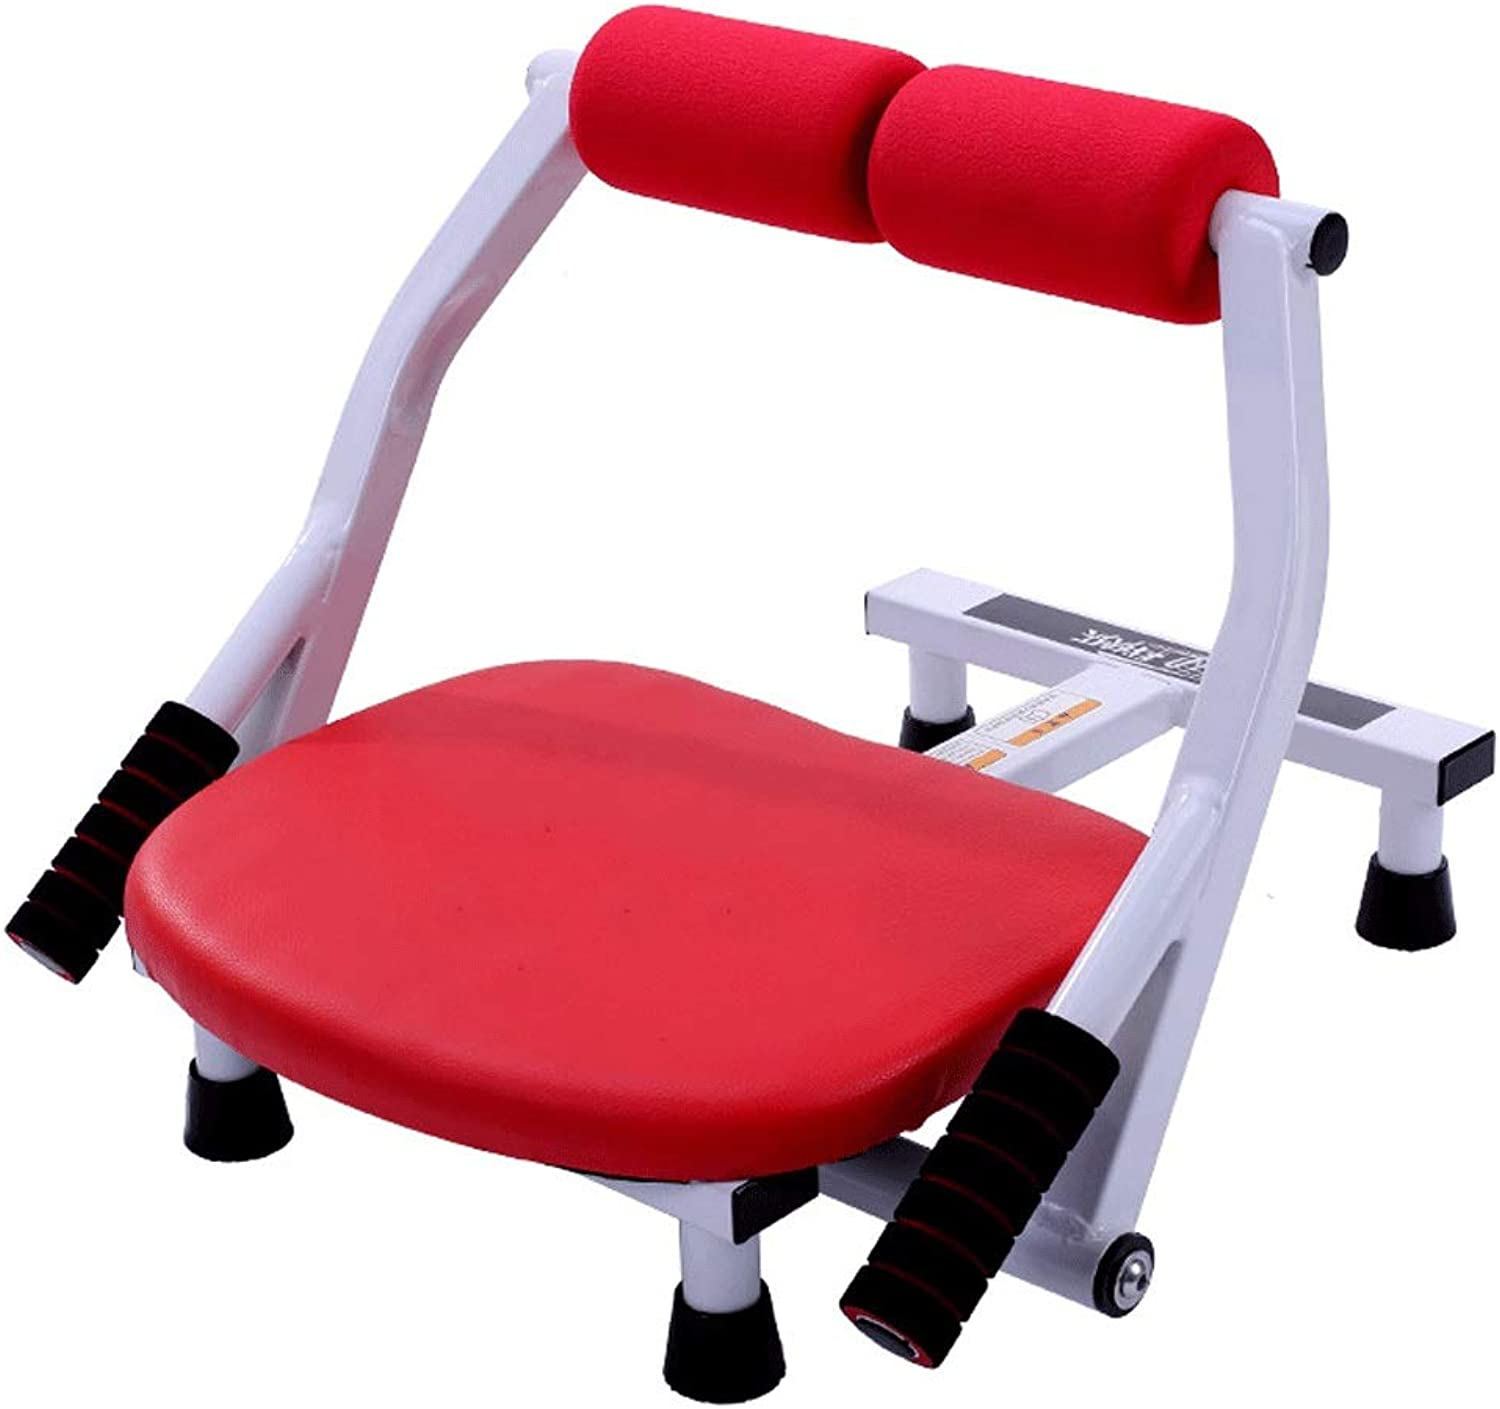 YUNHAO American Waist Multi-Function Beauty Waist Free Inssizetion Home Fitness Equipment Red bluee Keep fit and Practical